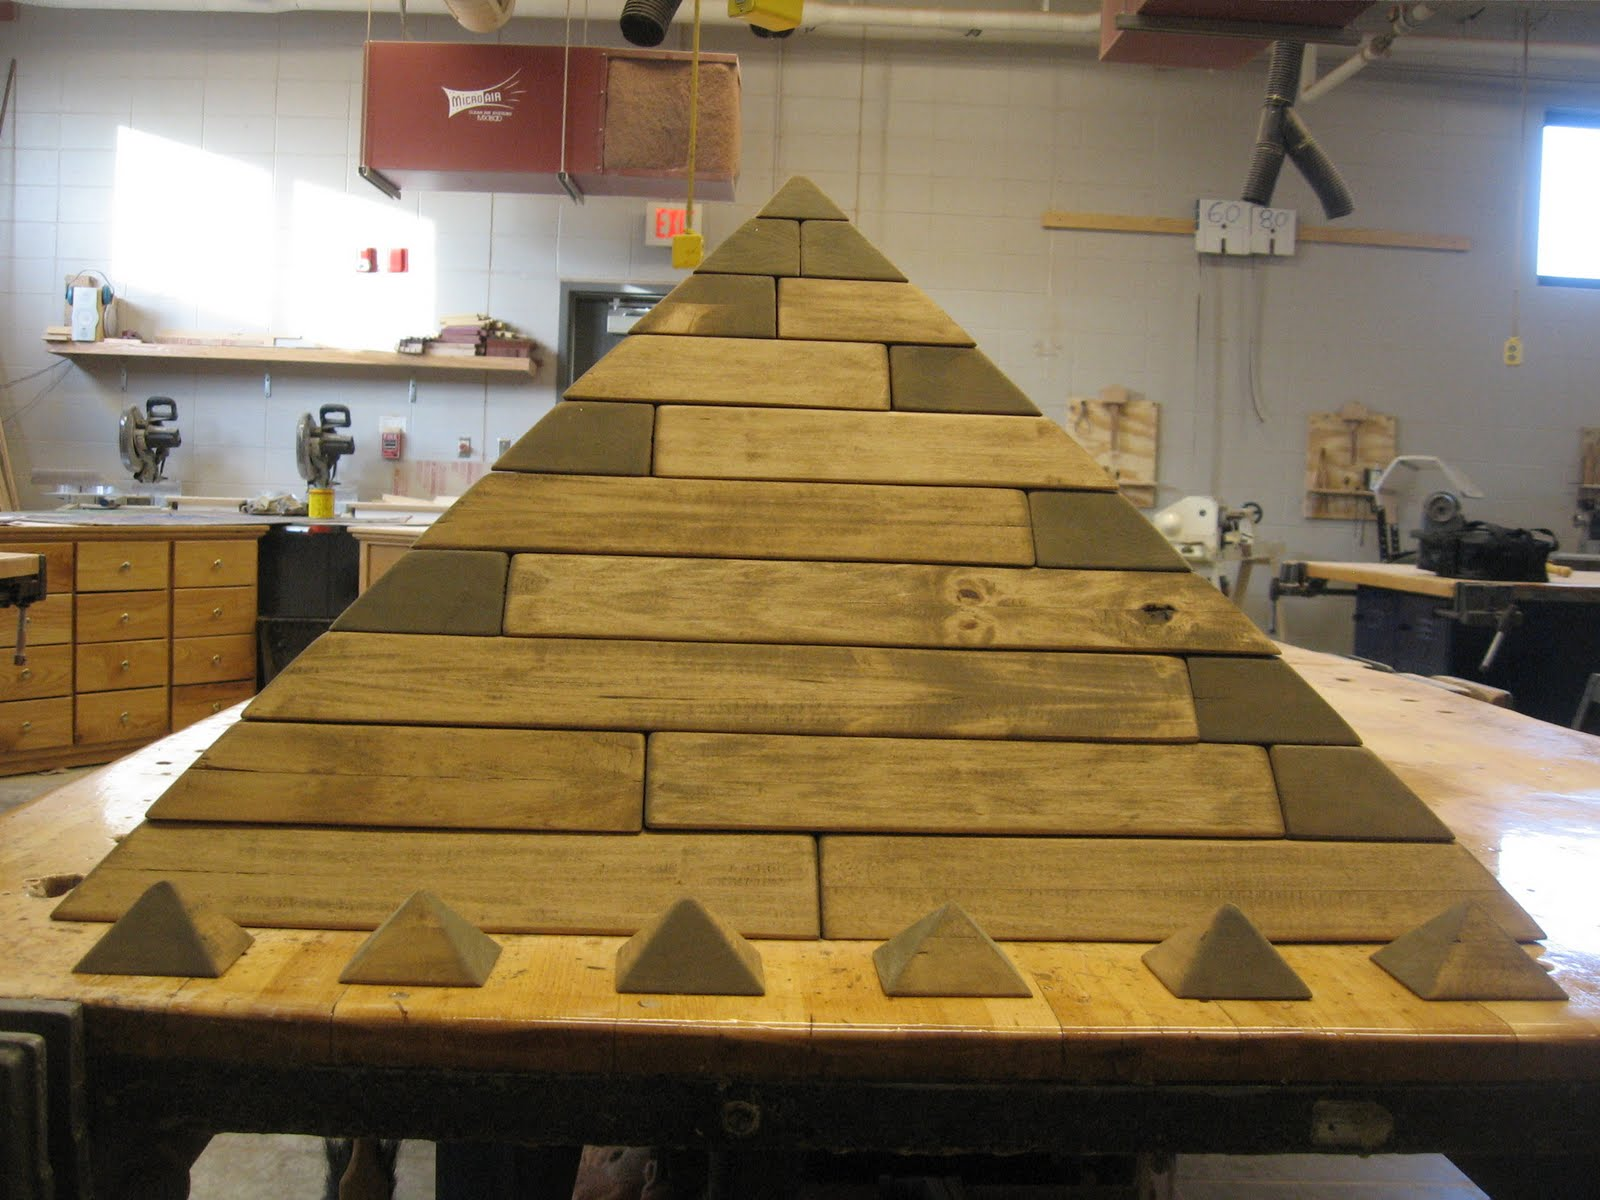 Mr. Wiemers' Shop: Pyramid - Sanded and Stained